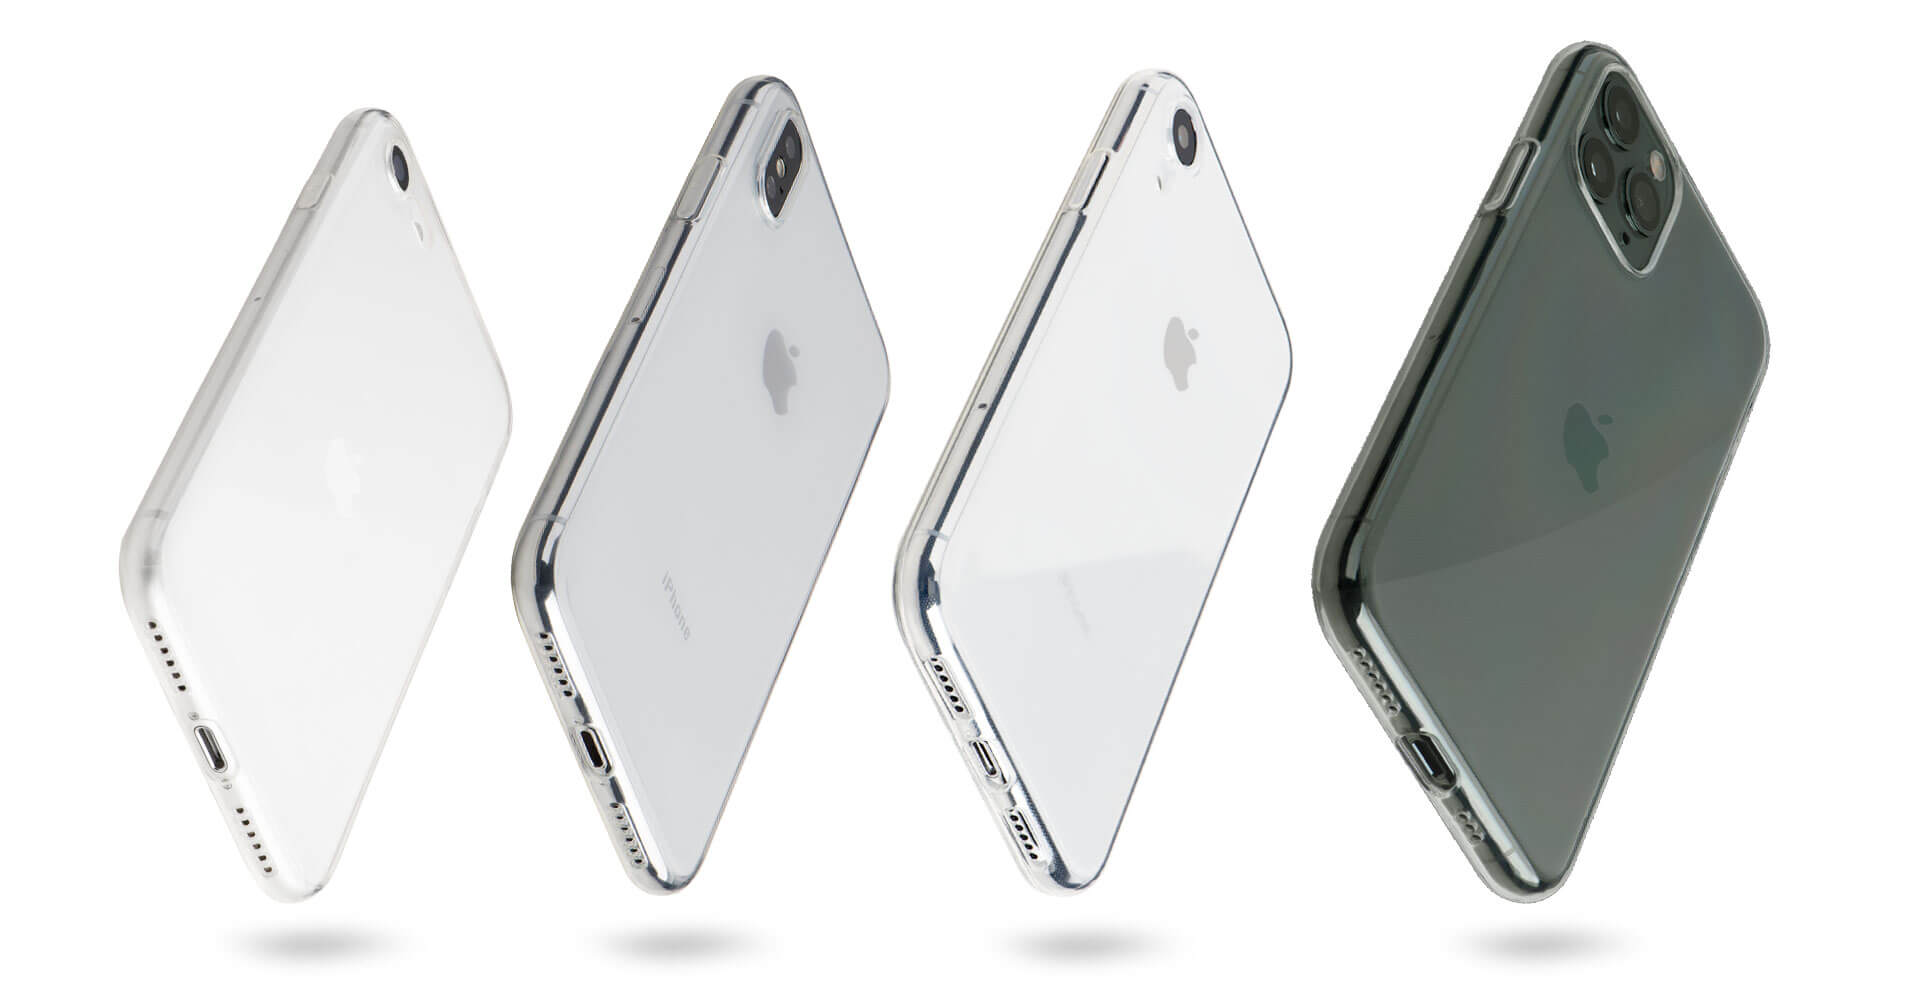 Should I buy the iPhone 12?